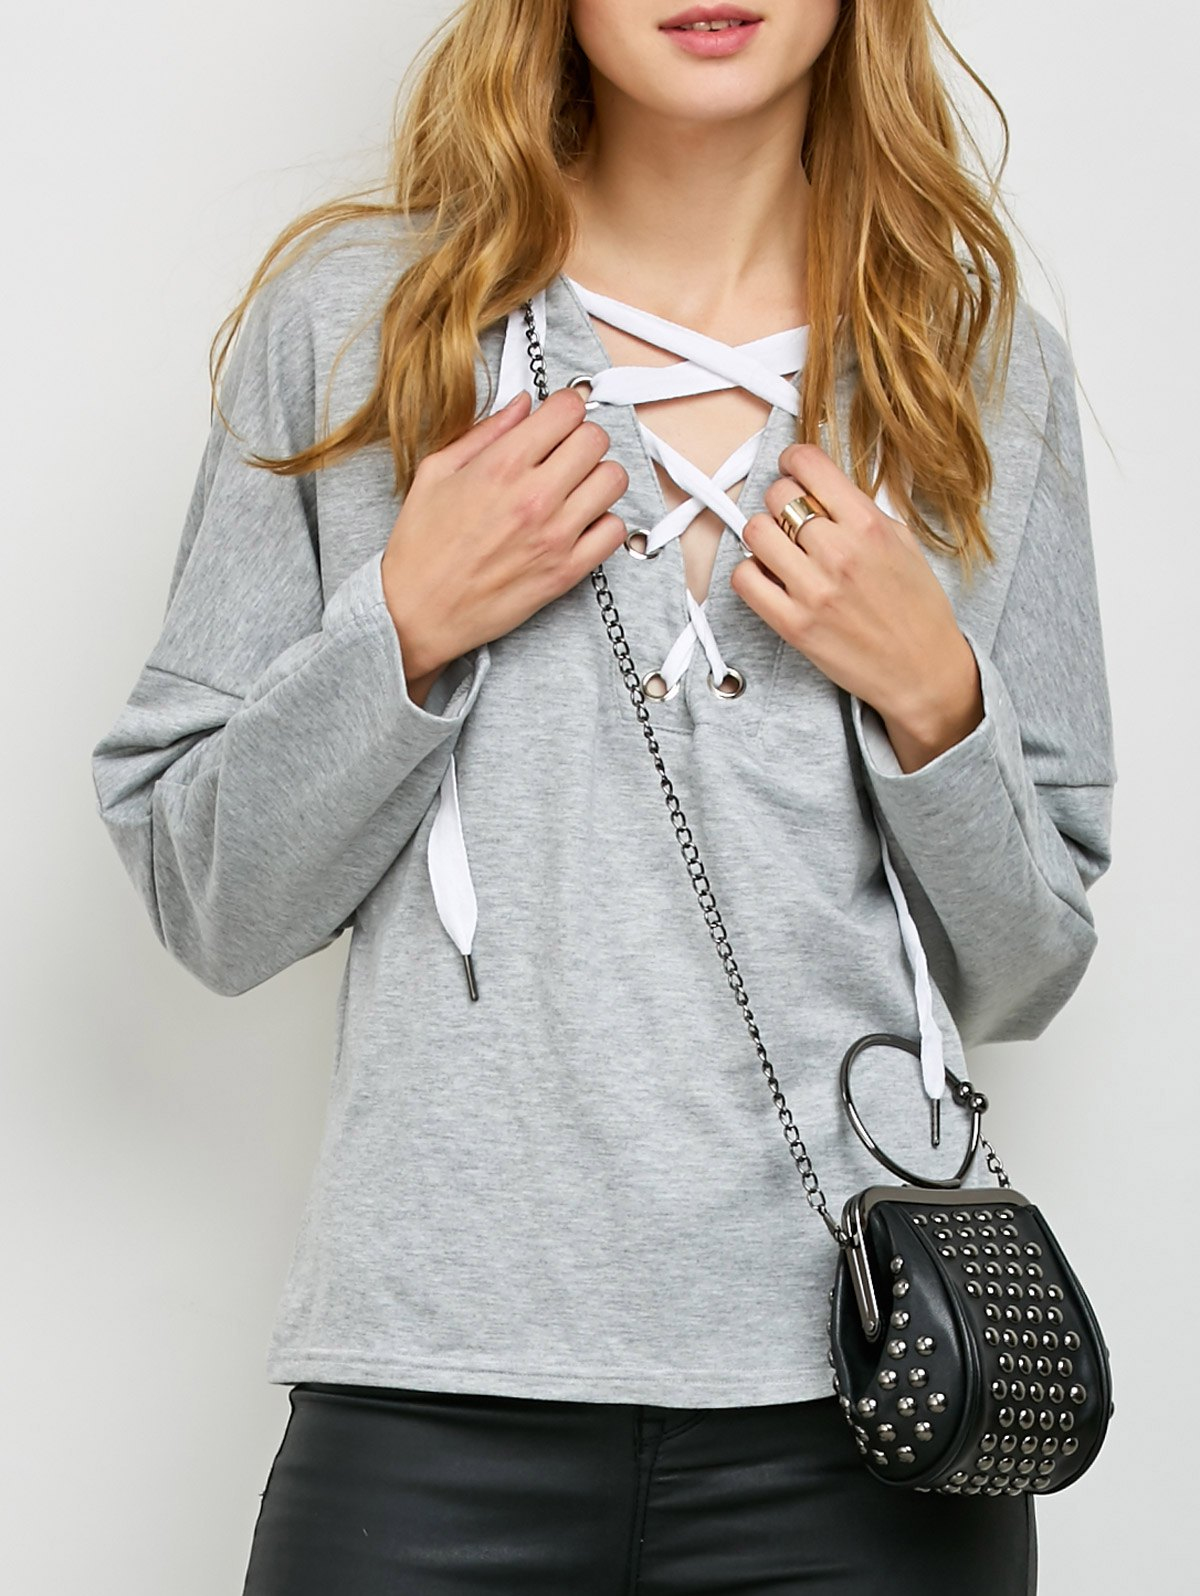 V Neck Lace Up HoodieClothes<br><br><br>Size: S<br>Color: LIGHT GRAY